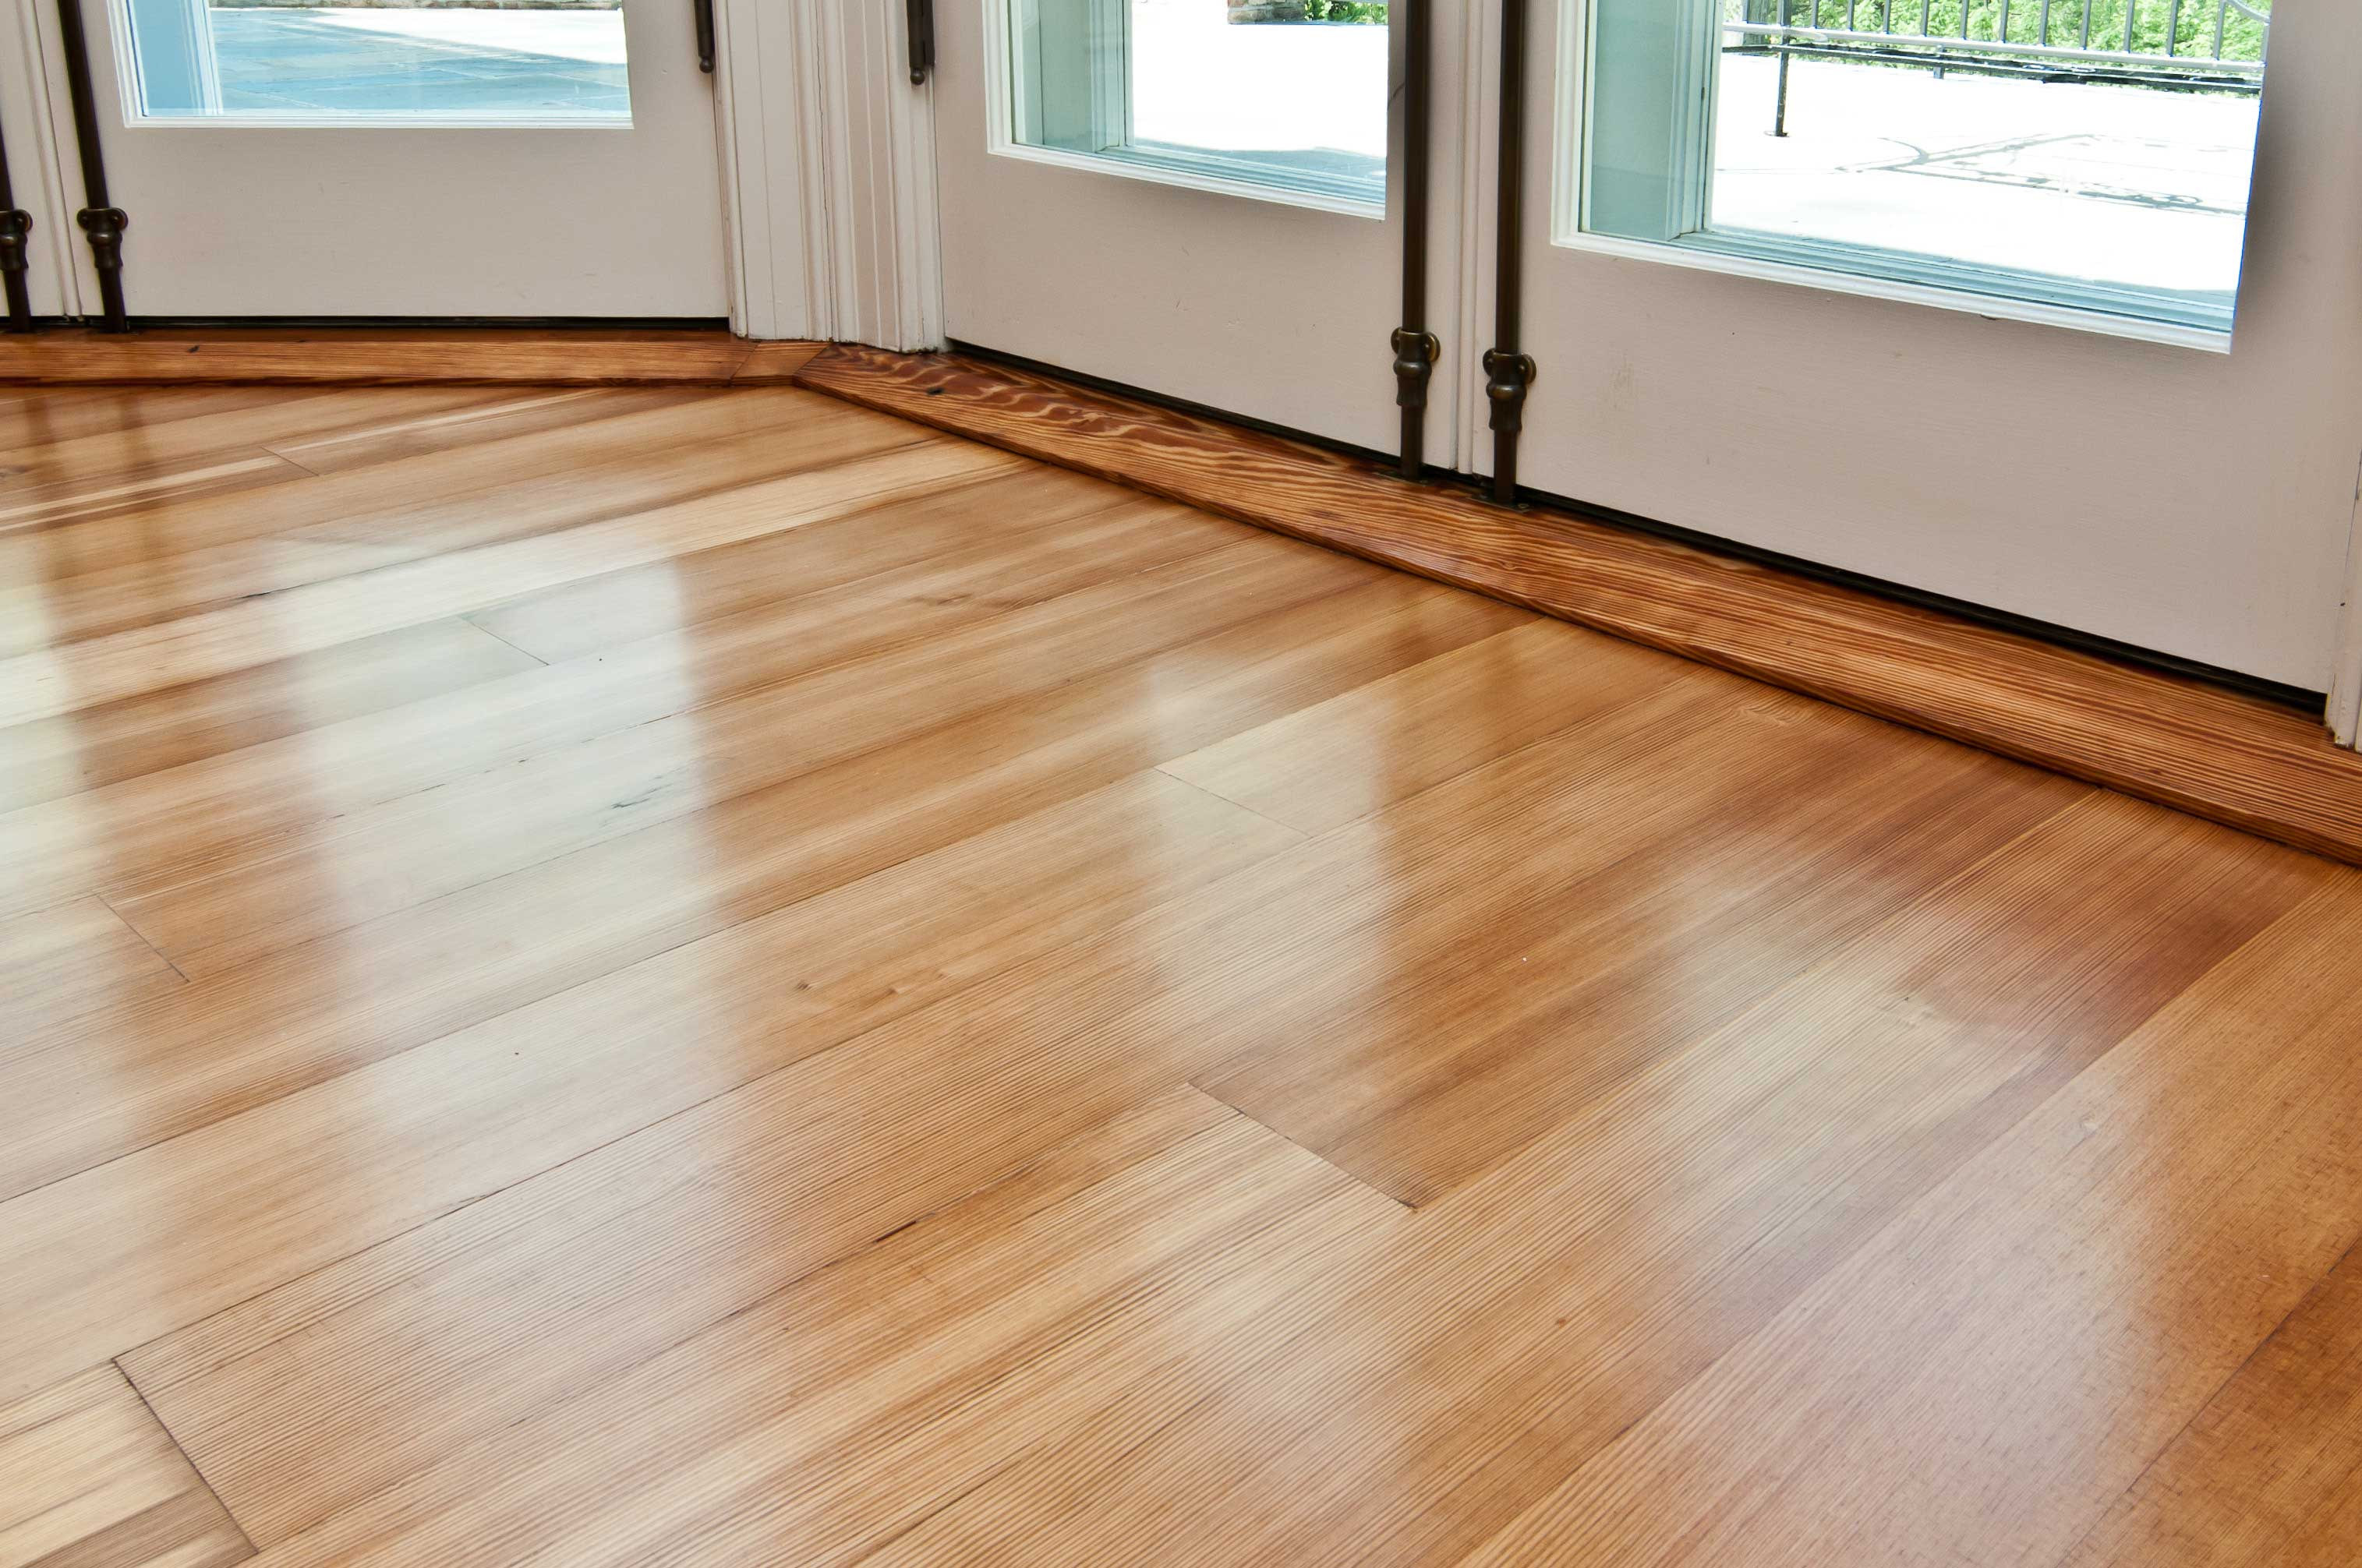 Reclaimed #1 Quartersawn Heart Pine Flooring ~ Cold Spring Harbor, New York